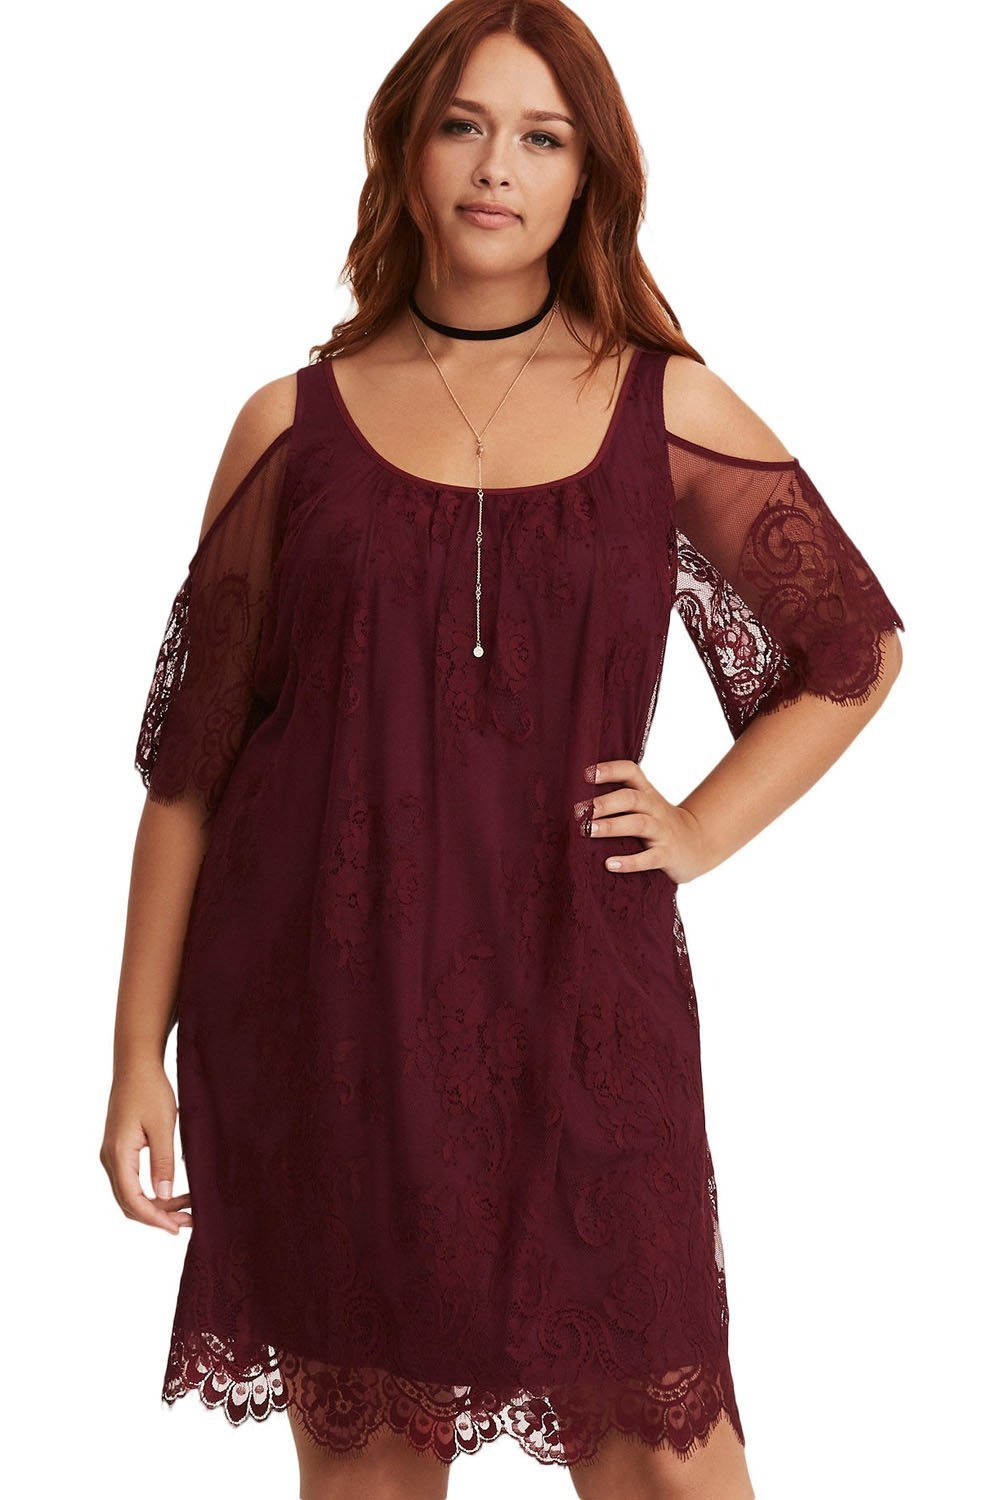 623d449c5abd plus size Off Shoulder Dress XL   AUS 14 - 16   Wine Red zzz. ...